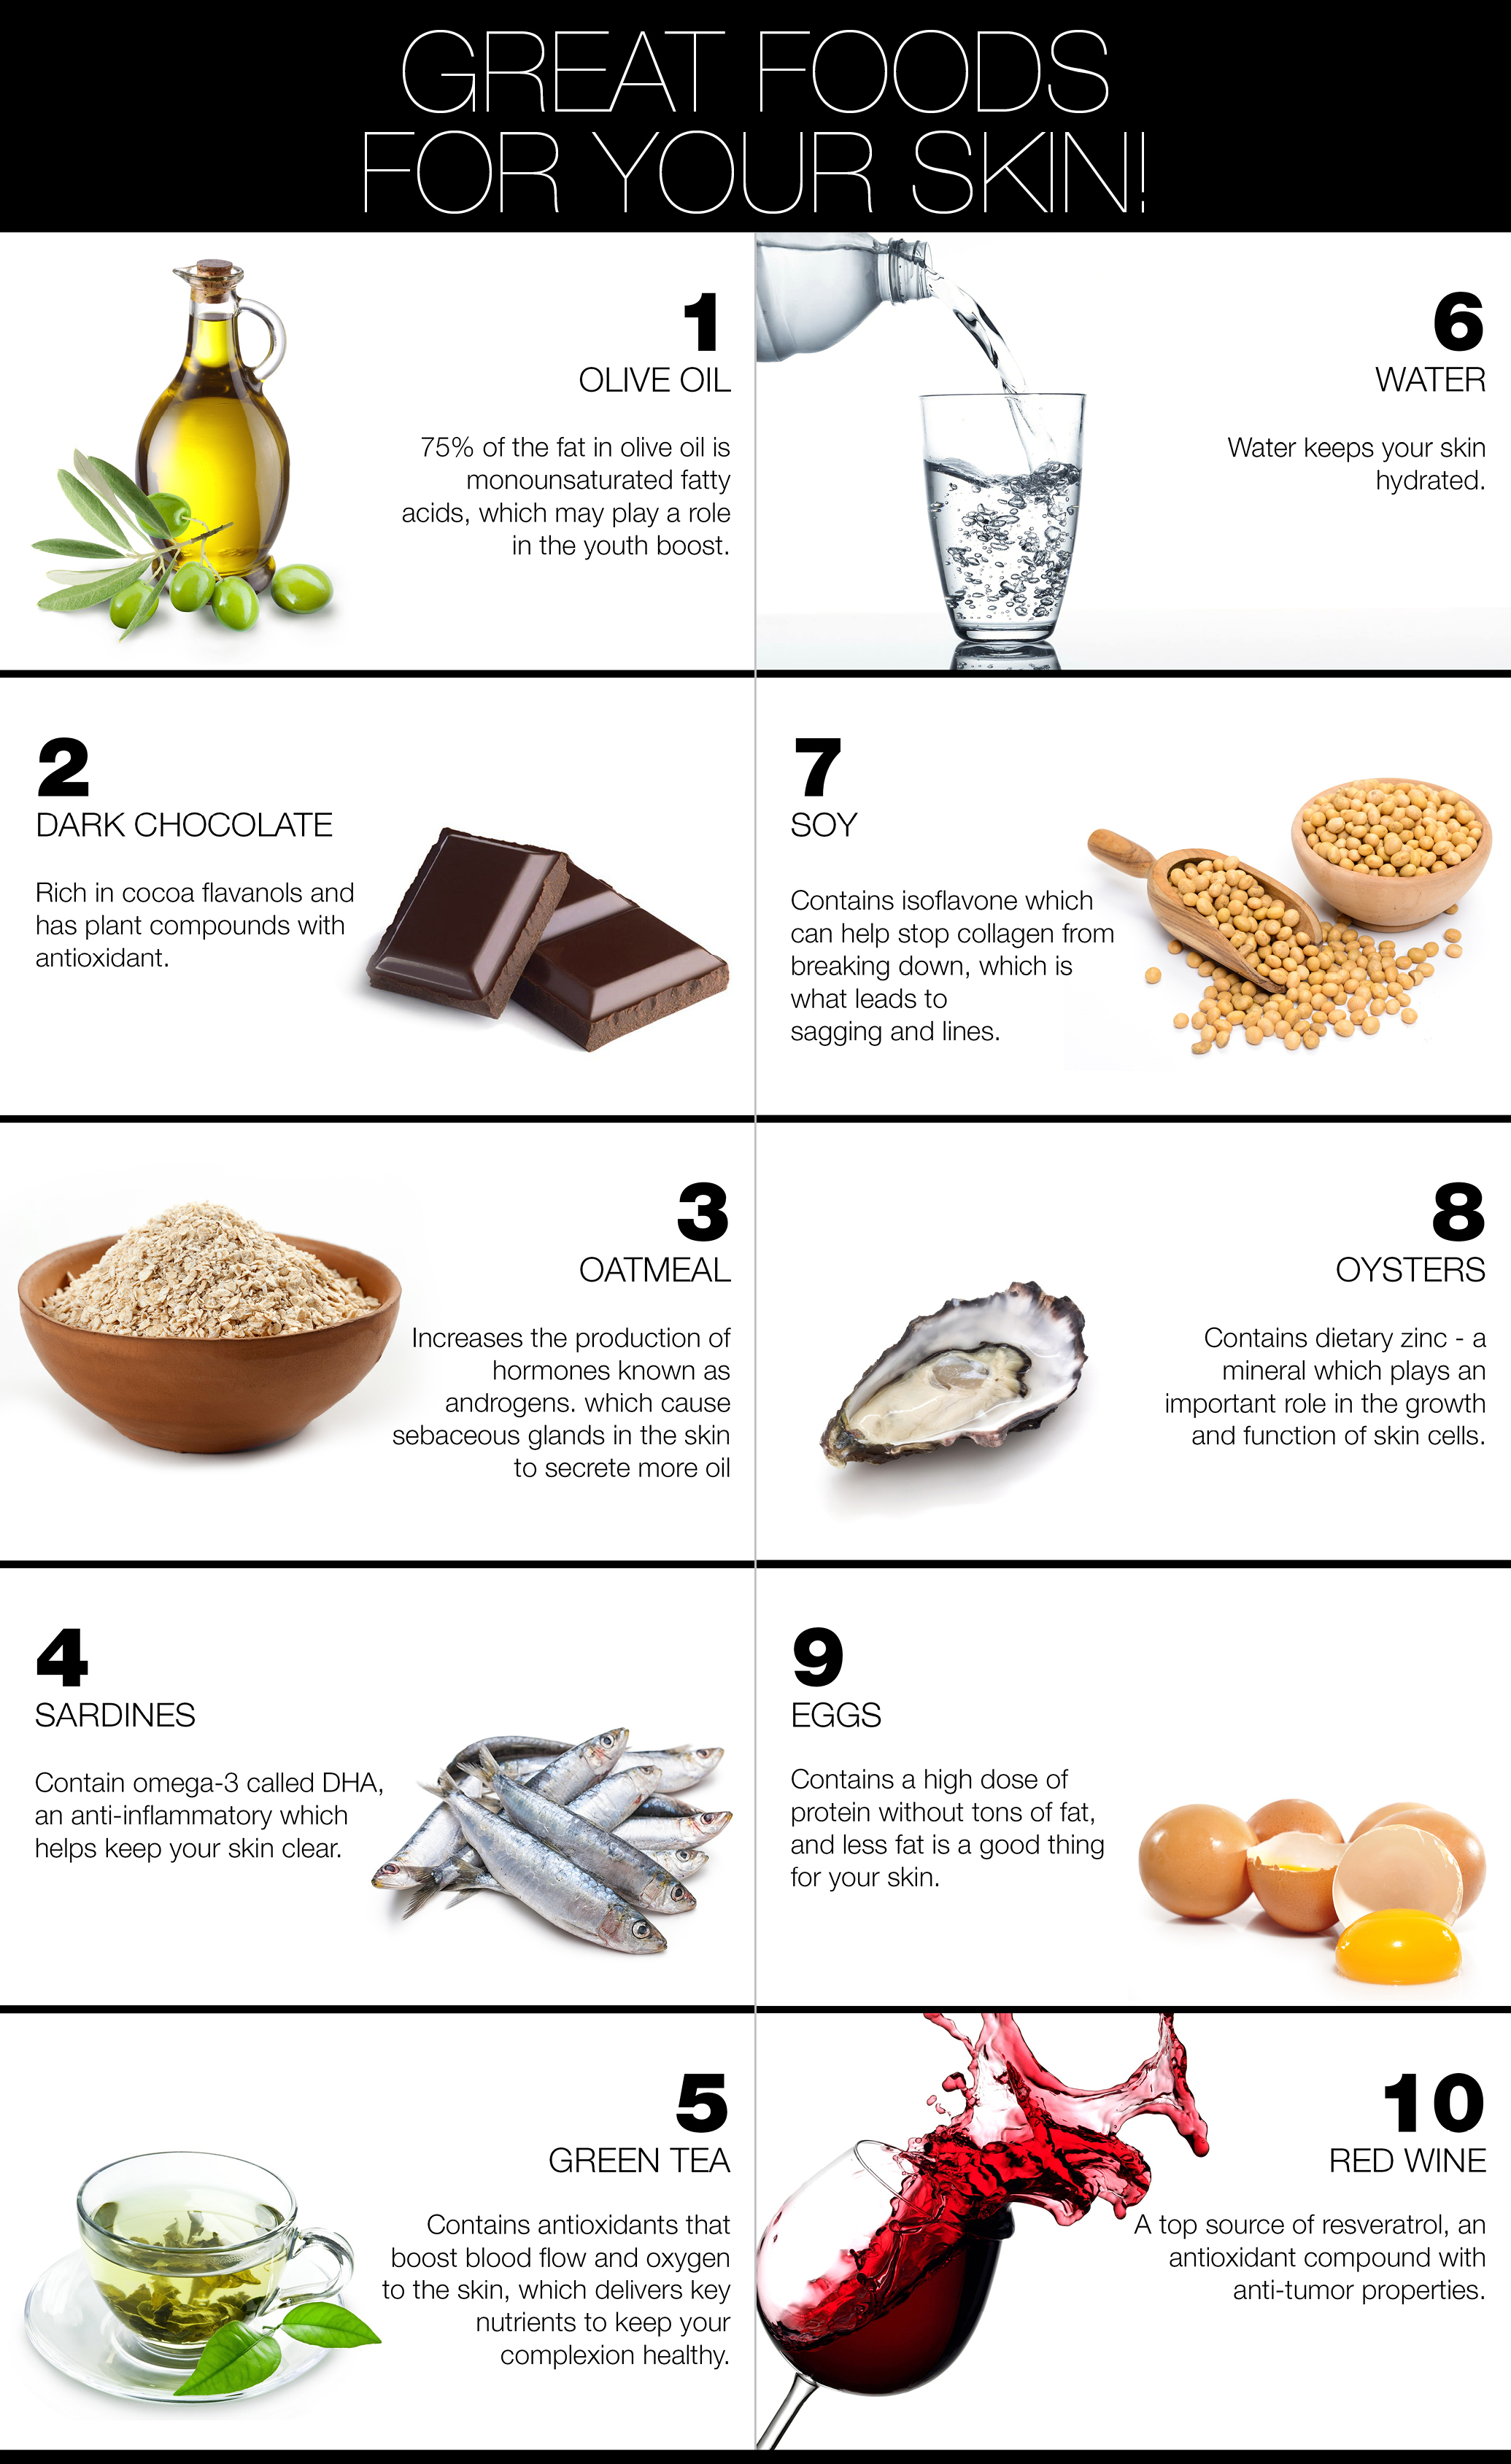 Foods have beneficial properties for your skin!